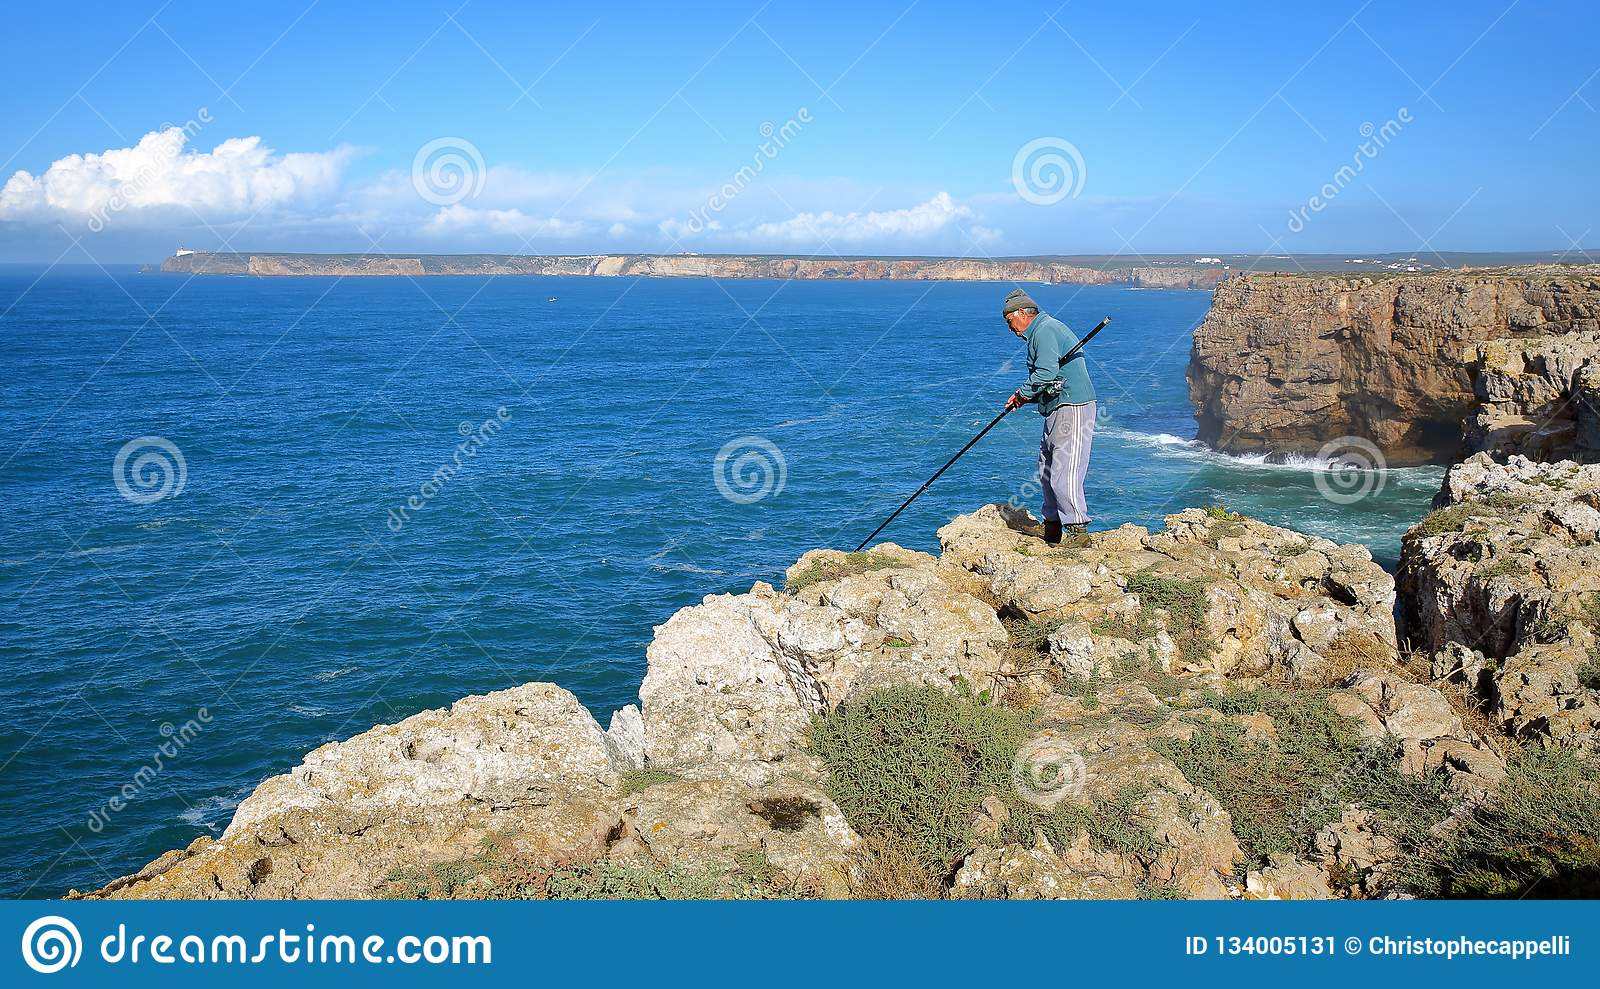 Fisherman angling above the high cliffs at Sagres Fortress Fortaleza with Cabo de Sao Vicente lighthouse in the background